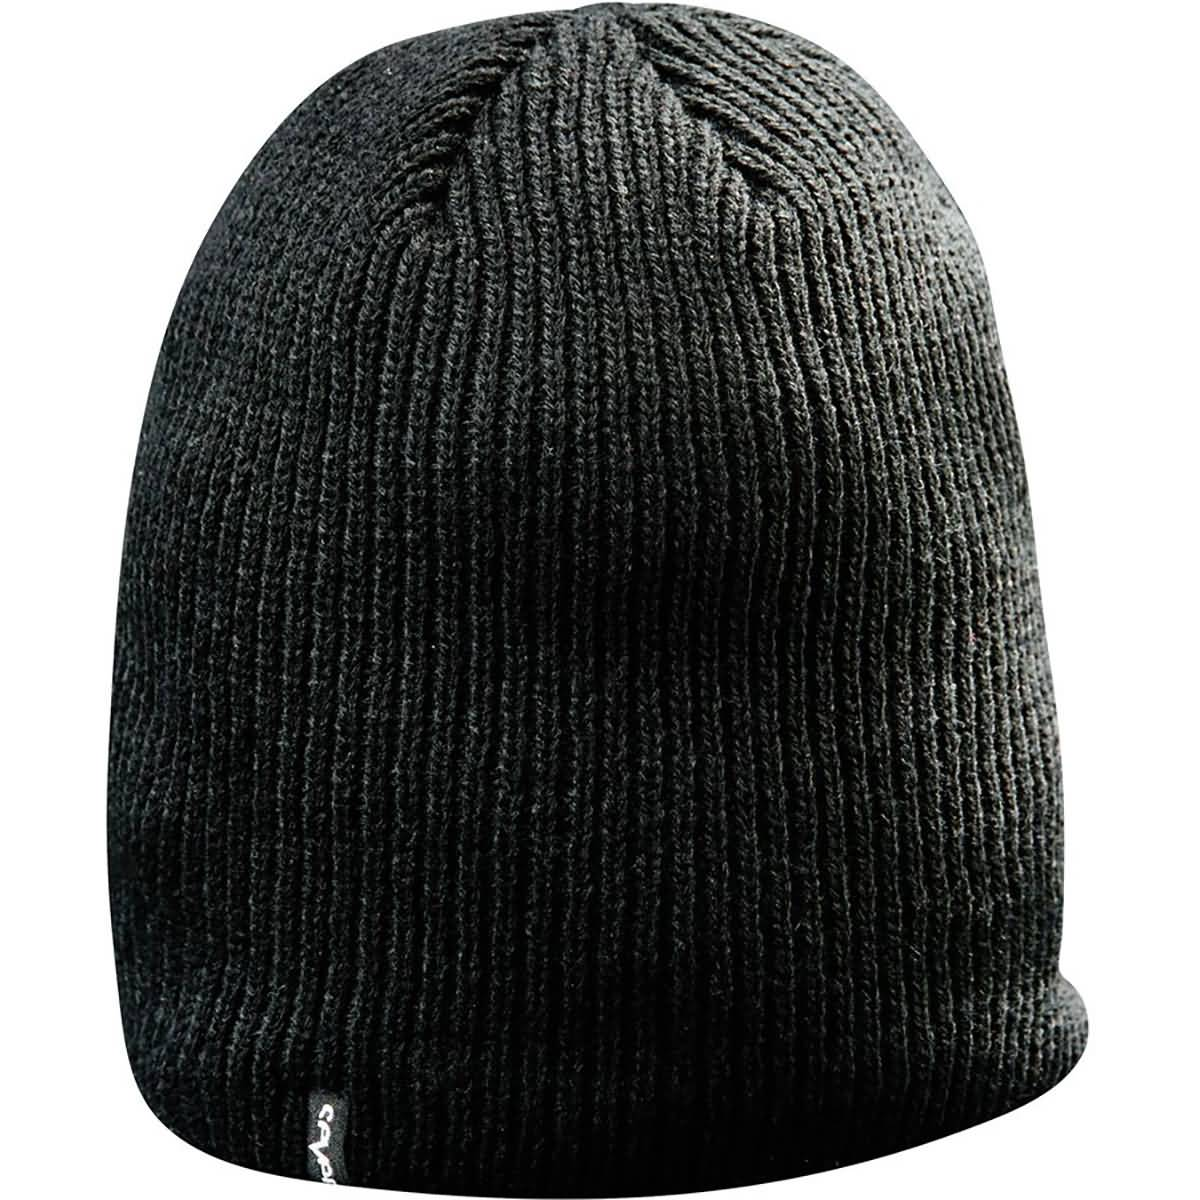 Seven Riot Men's Beanie Hats-1030002